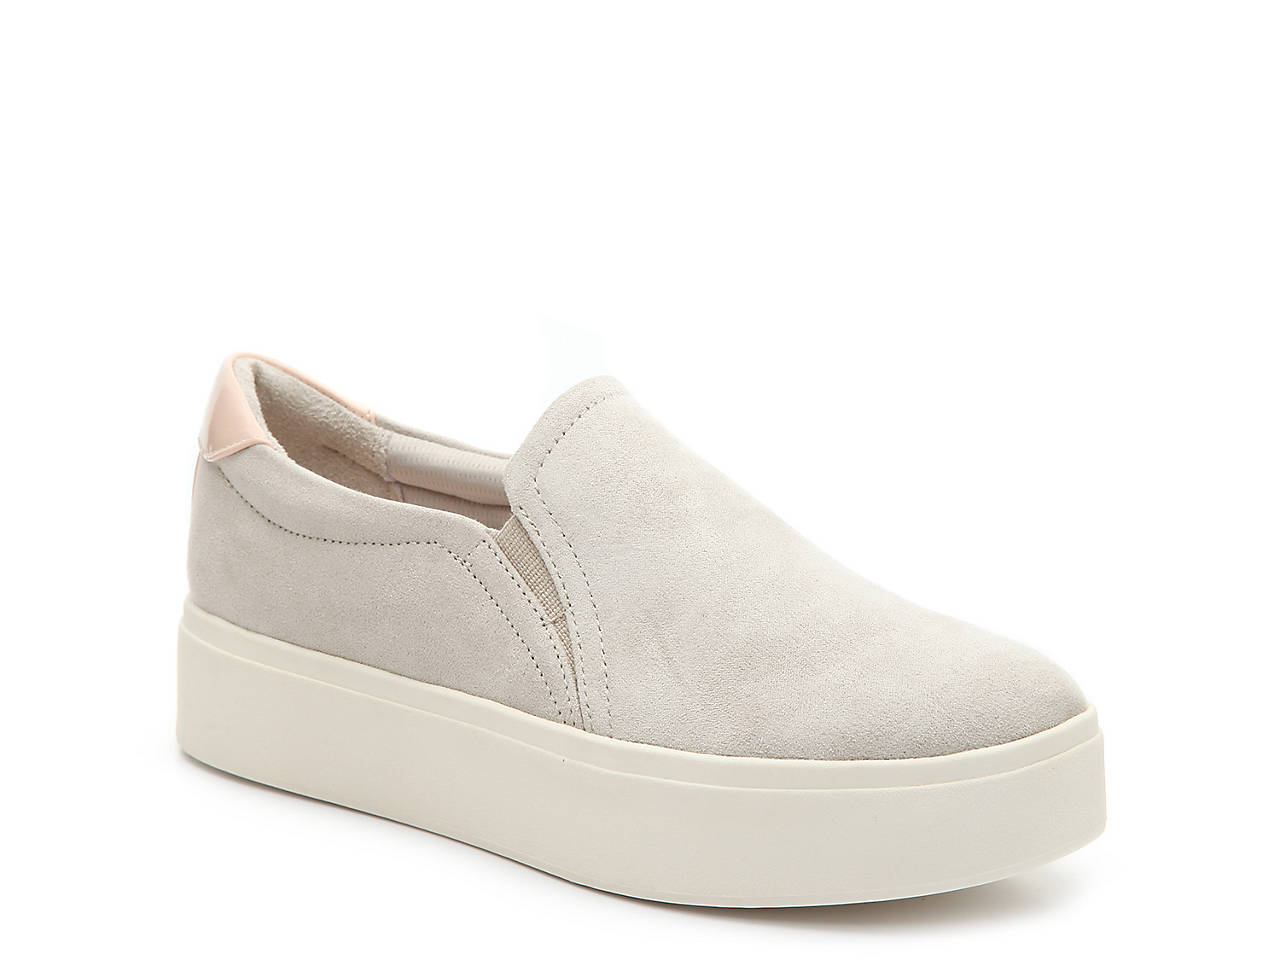 6fdf84a8aee Dr. Scholl s Kinney Platform Slip-On Sneaker Women s Shoes